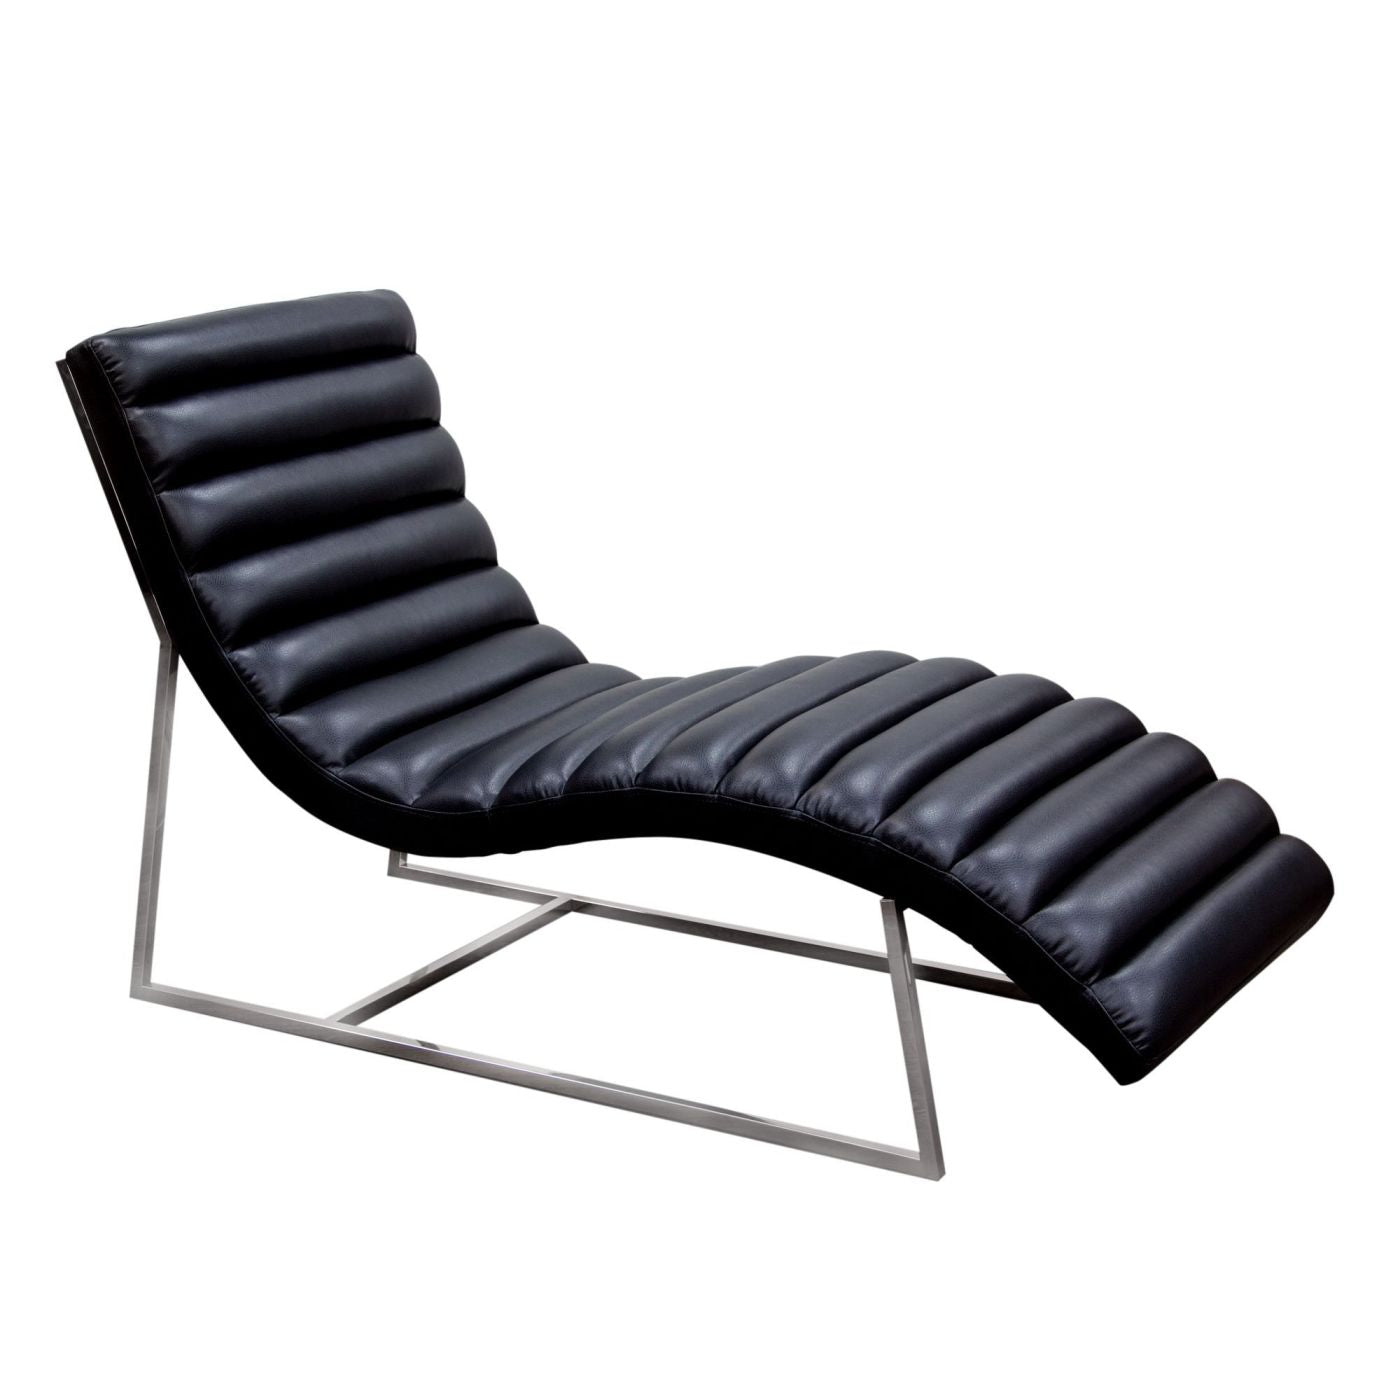 Oversized Chaise Lounge Chairs At Contemporary Furniture Warehouse